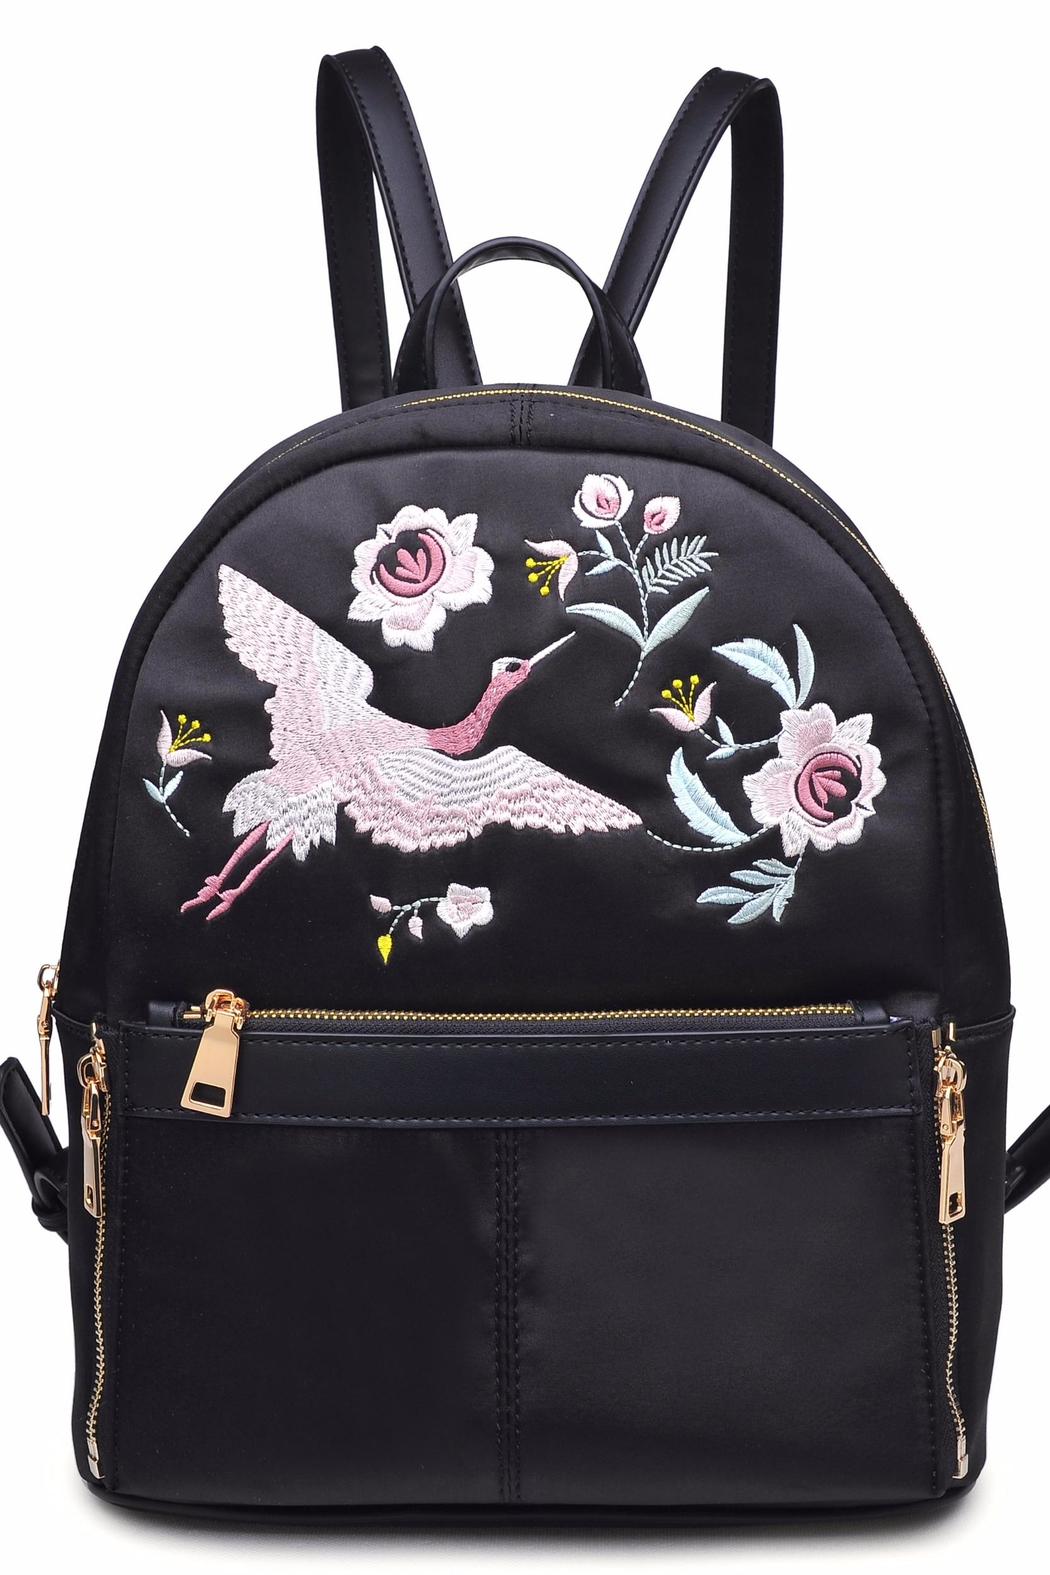 Urban Expressions Rio Embroidered Backpack - Front Cropped Image